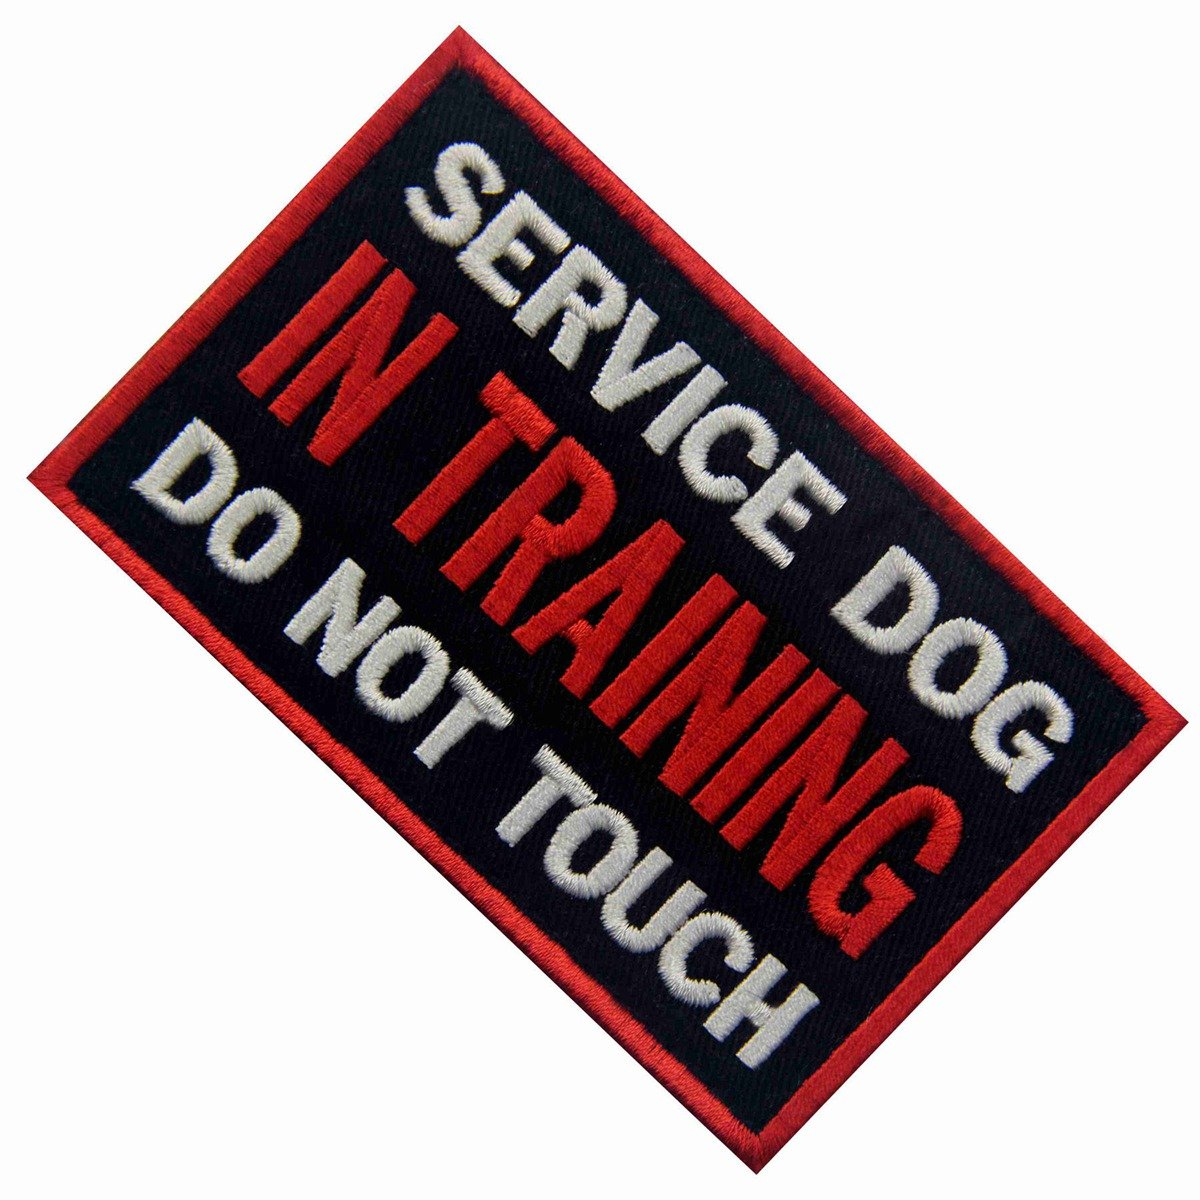 Service Dog Patch Vests//Harnesses Access Required by Law No Exceptions Applique Embroidered Fastener Hook /& Loop Emblem